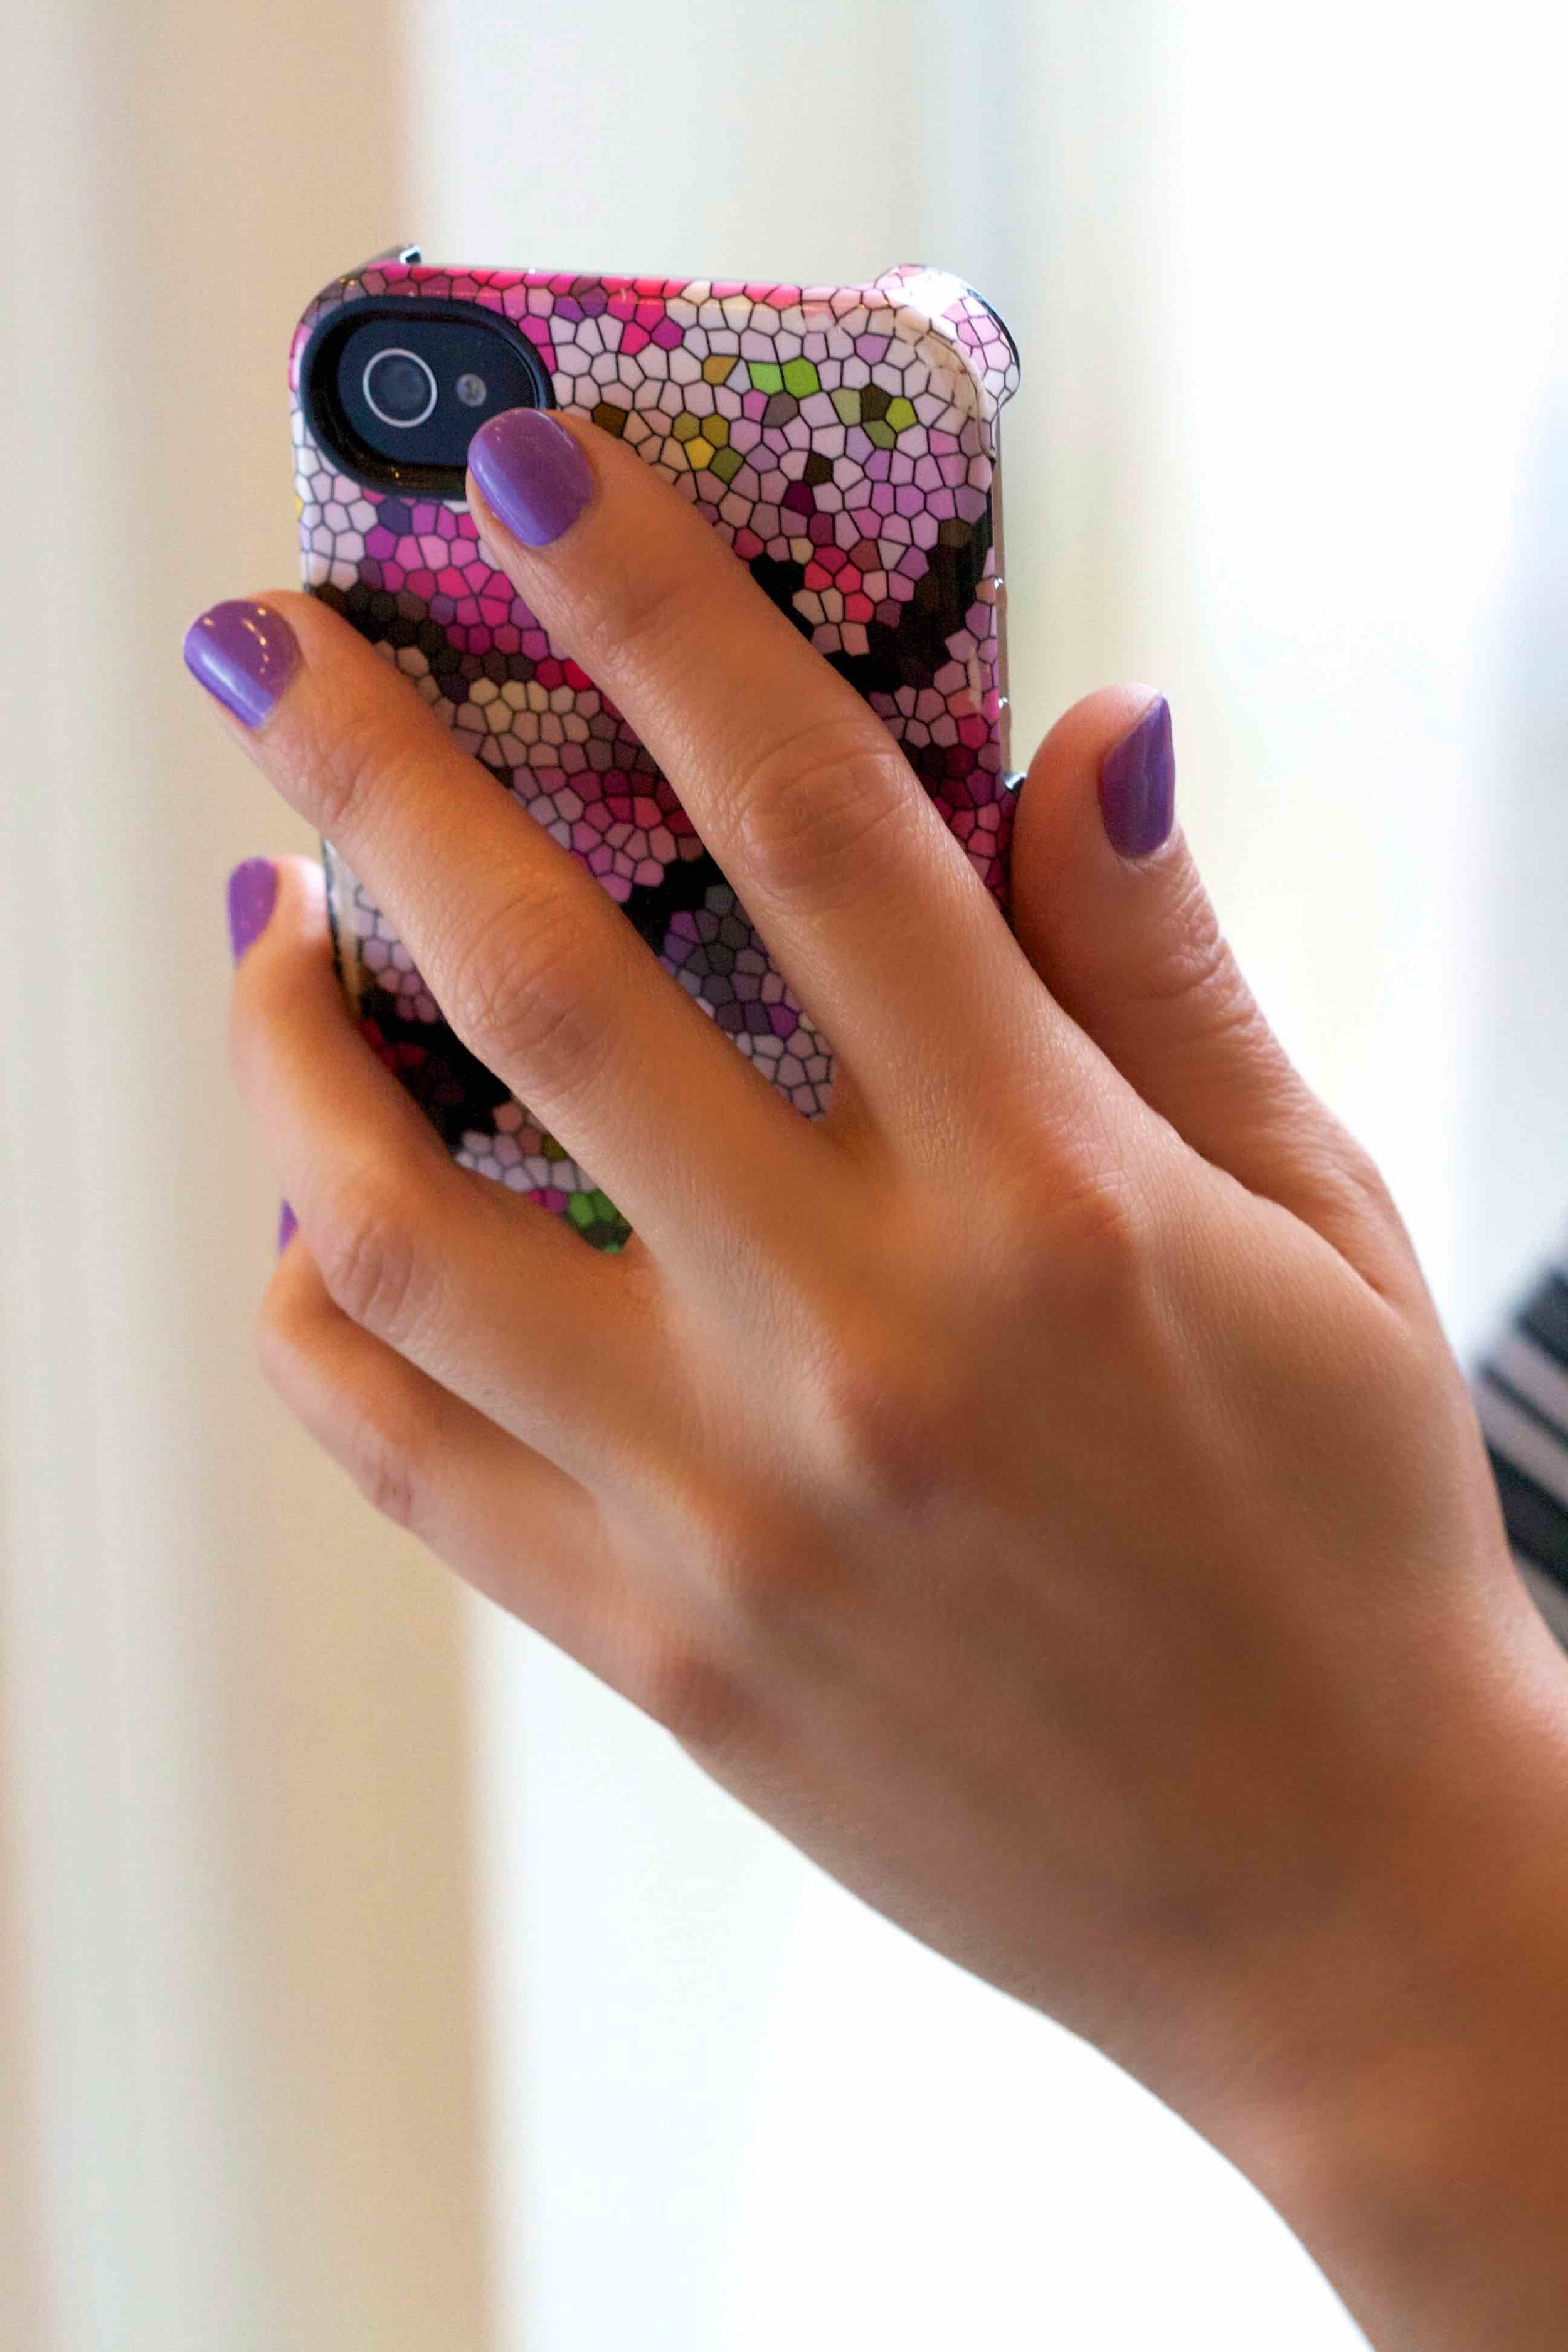 Nilsa Reyna Hand with Phone Resized.jpg